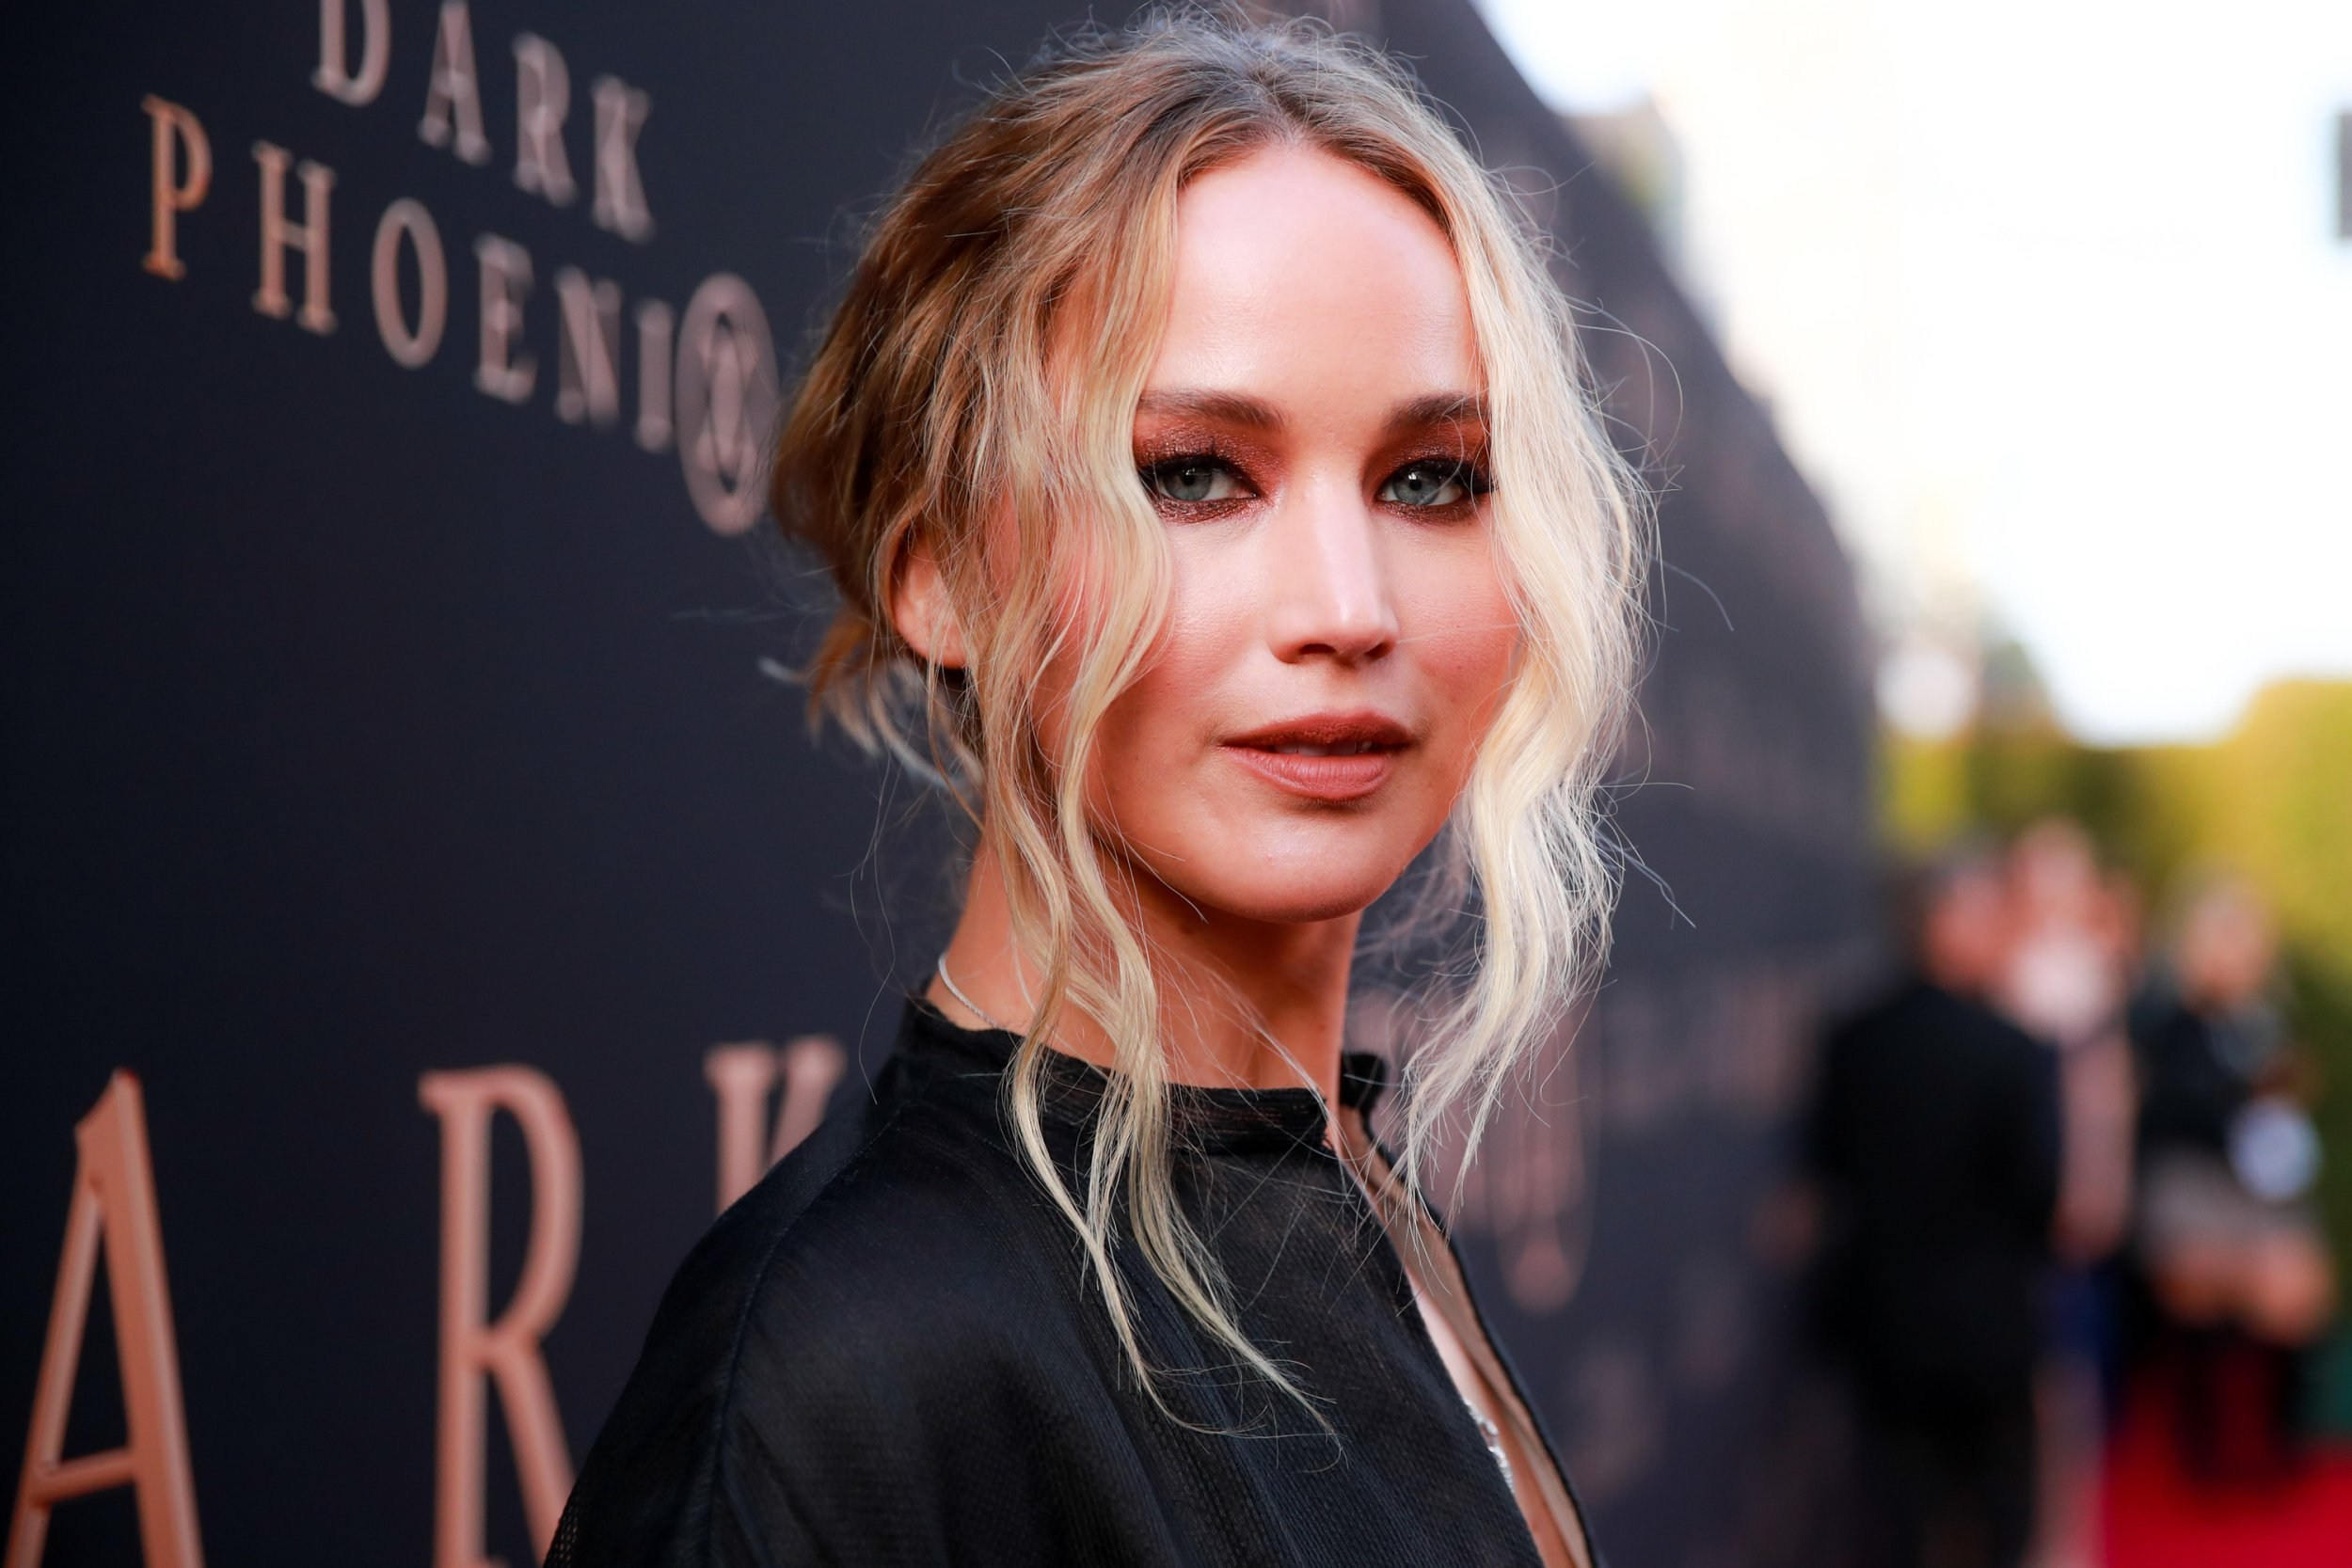 Jennifer Lawrence joins Twitter to demand justice for Breonna Taylor: 'I cannot be silent'